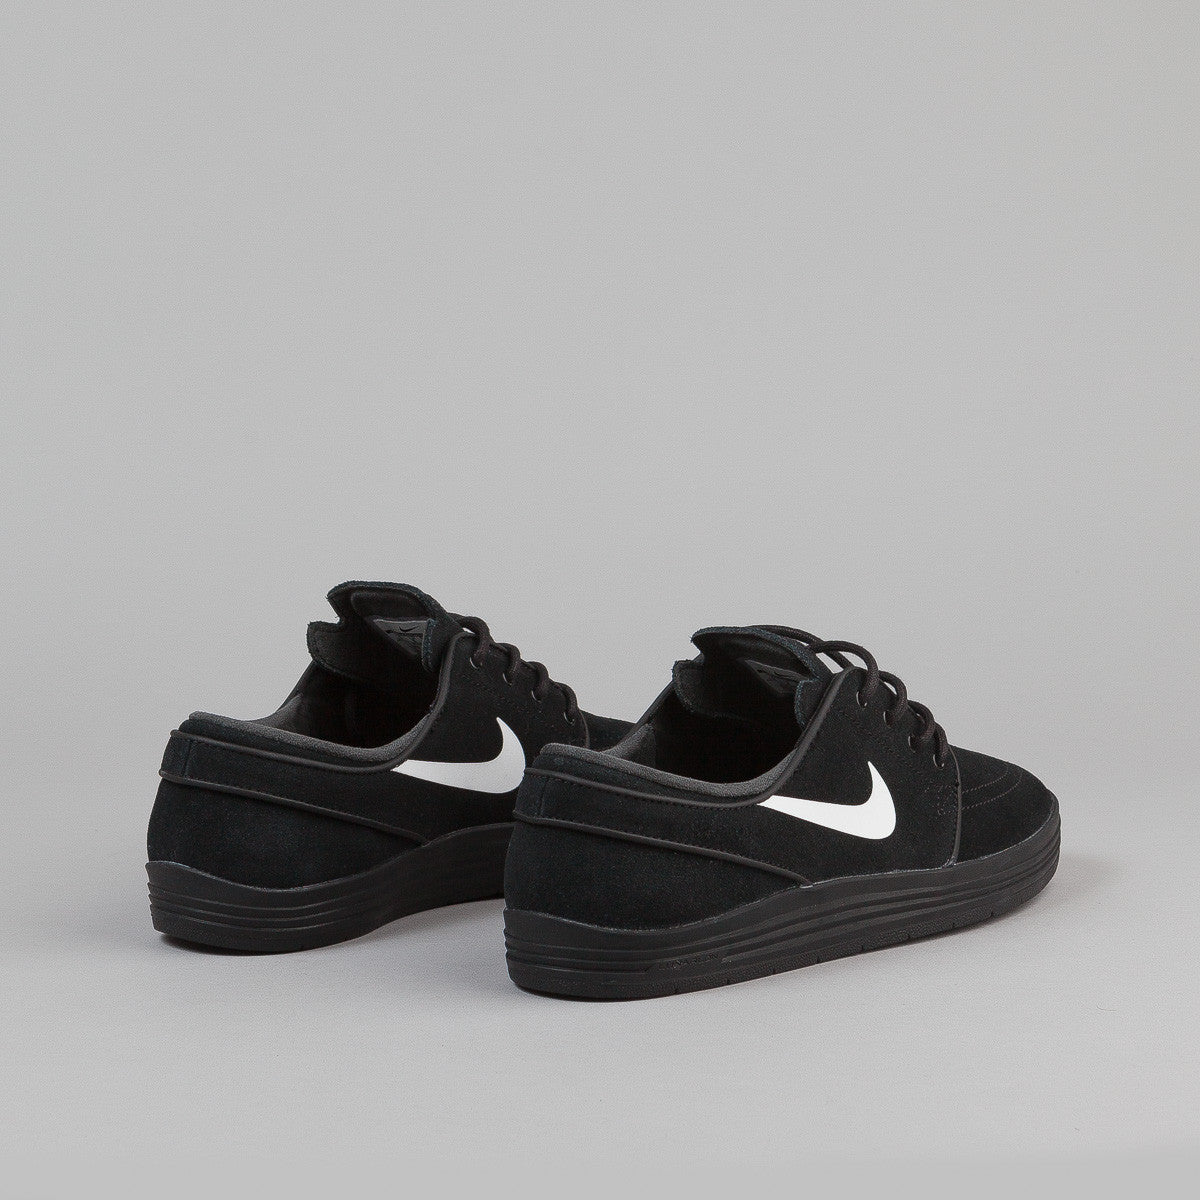 Nike SB Lunar Stefan Janoski Shoes - Black / Black - White